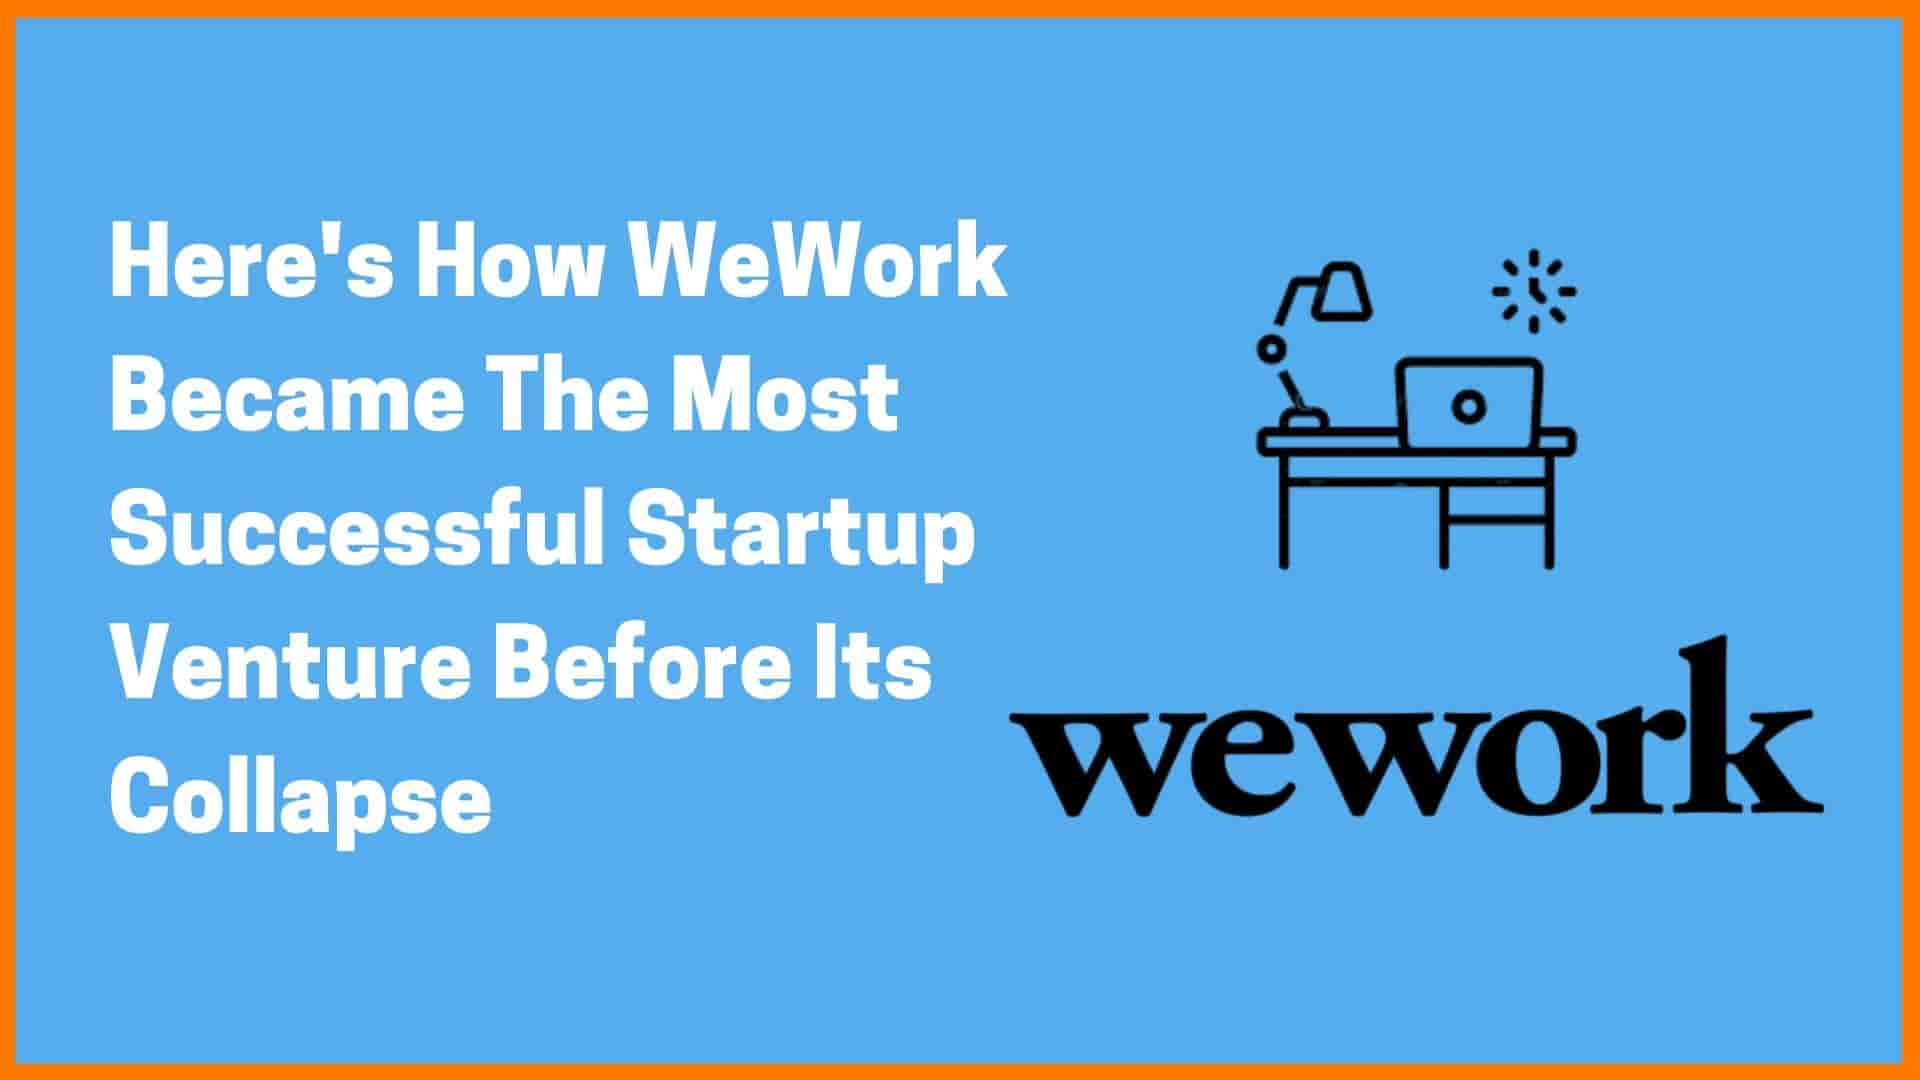 WeWork Case Study: A Fall From The Pinnacle Of Success